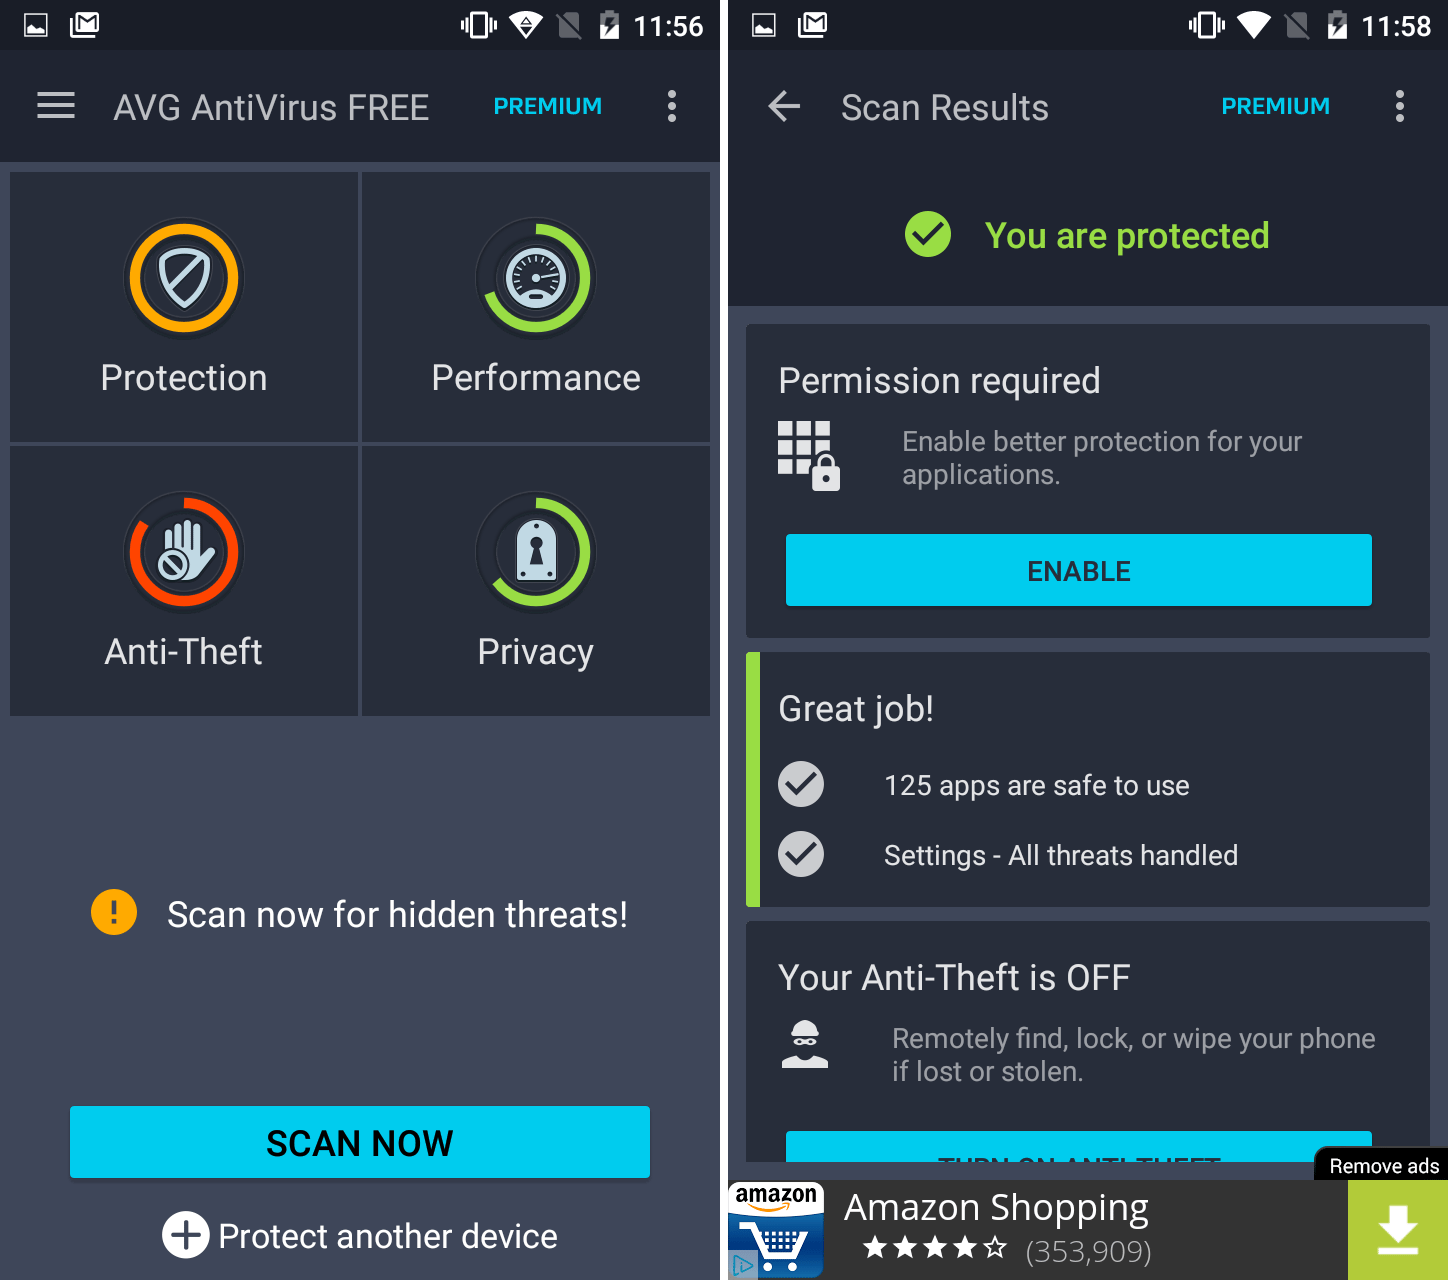 Android Security App Reviews: AVG Antivirus Free and Avast Mobile Security & Antivirus